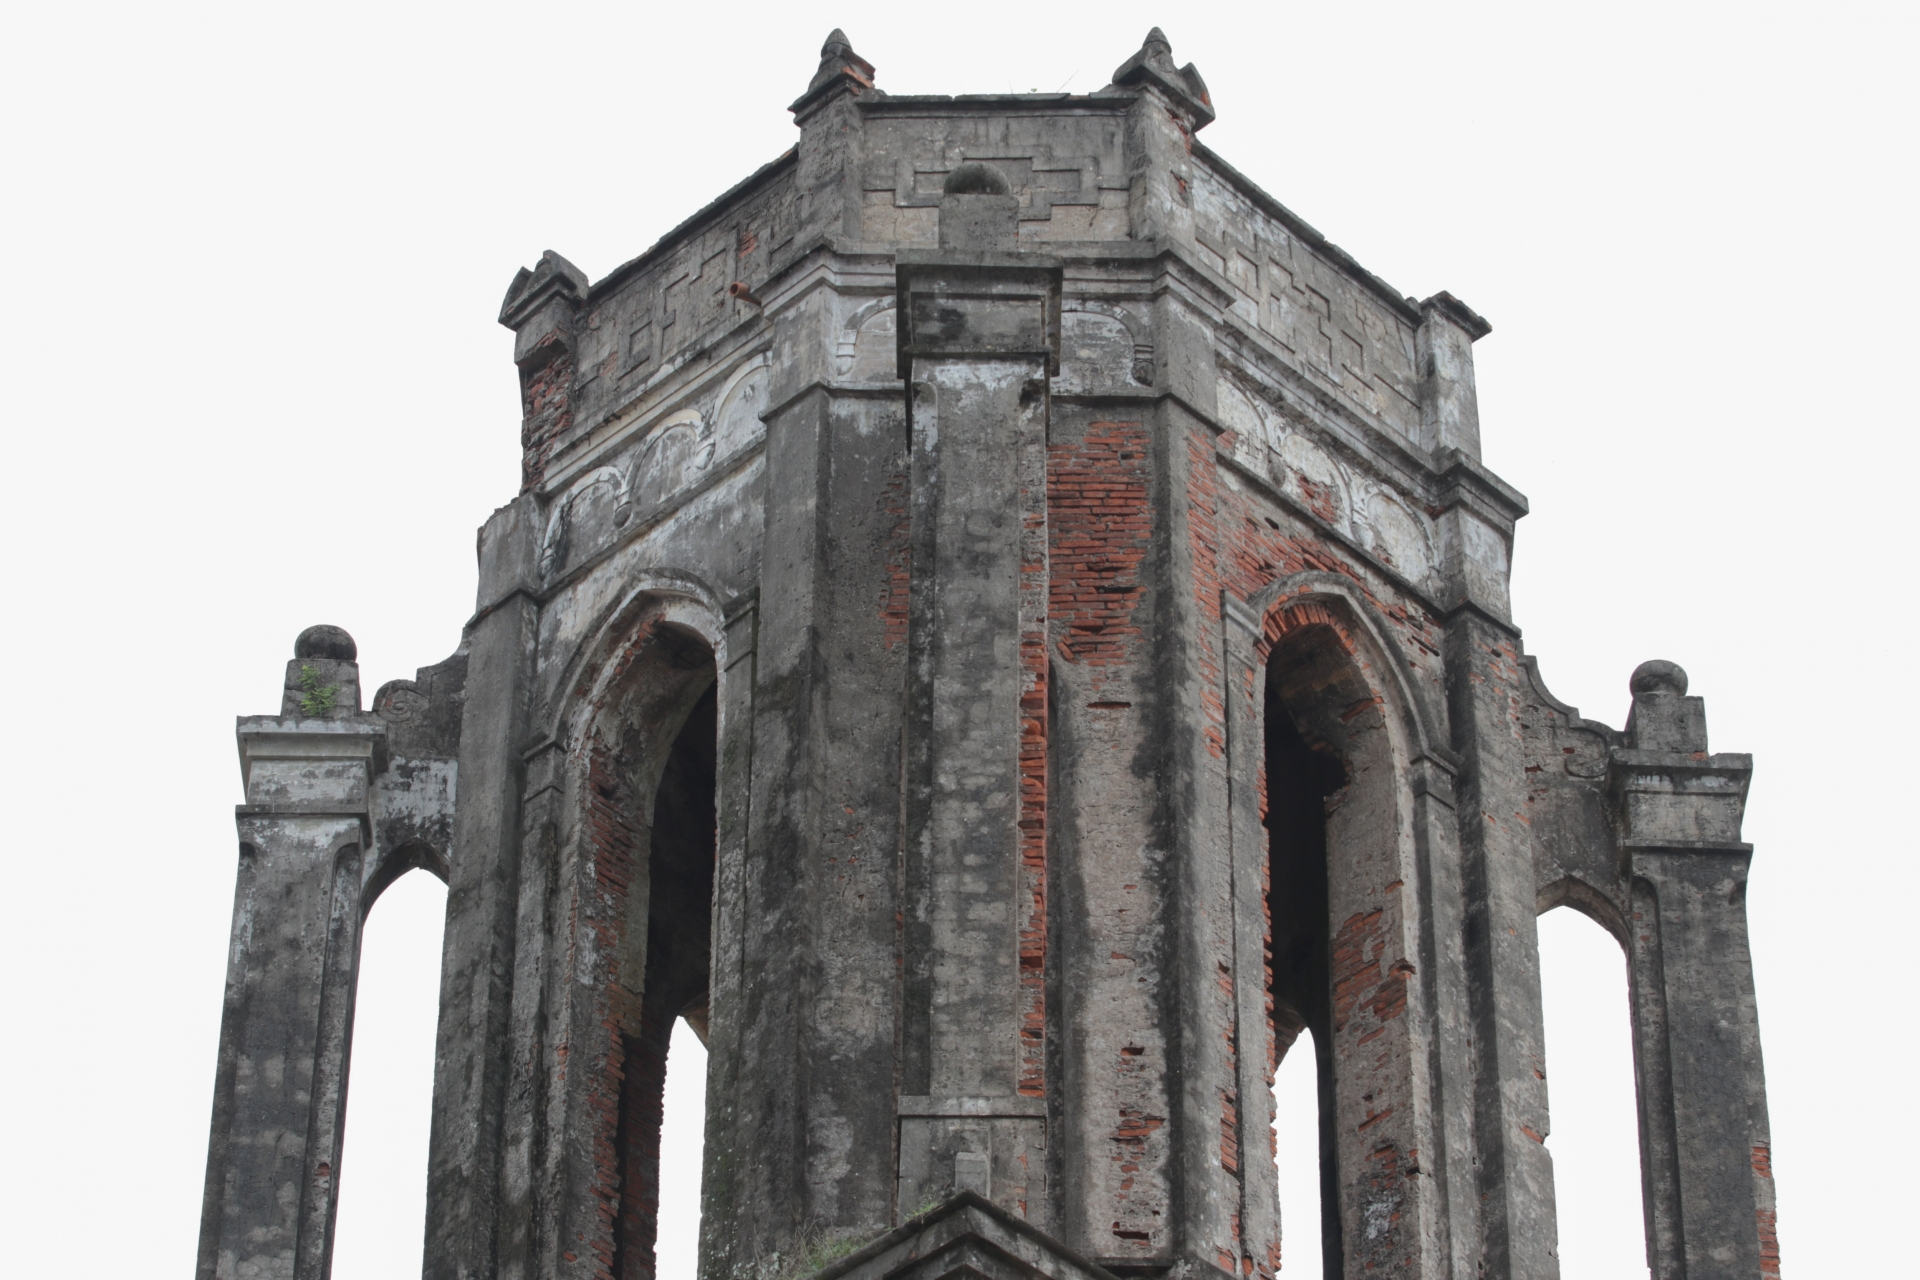 Unspoiled beauty in coastal 'Fallen church', northen Vietnam